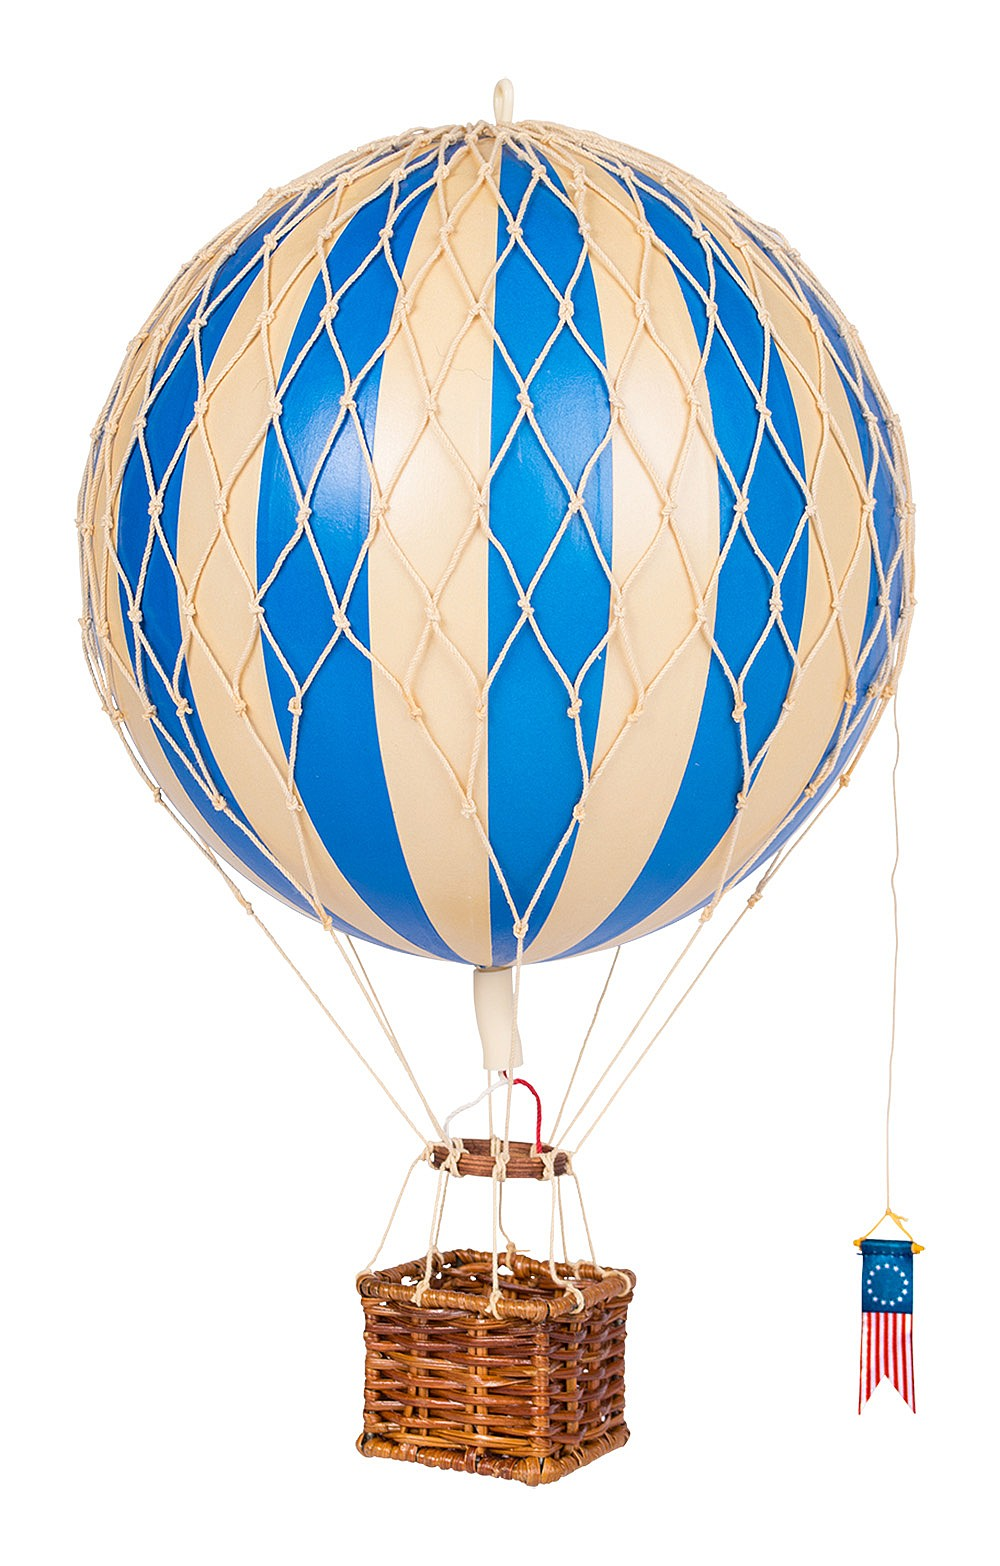 Small Hot Air Balloon - House of Bruar